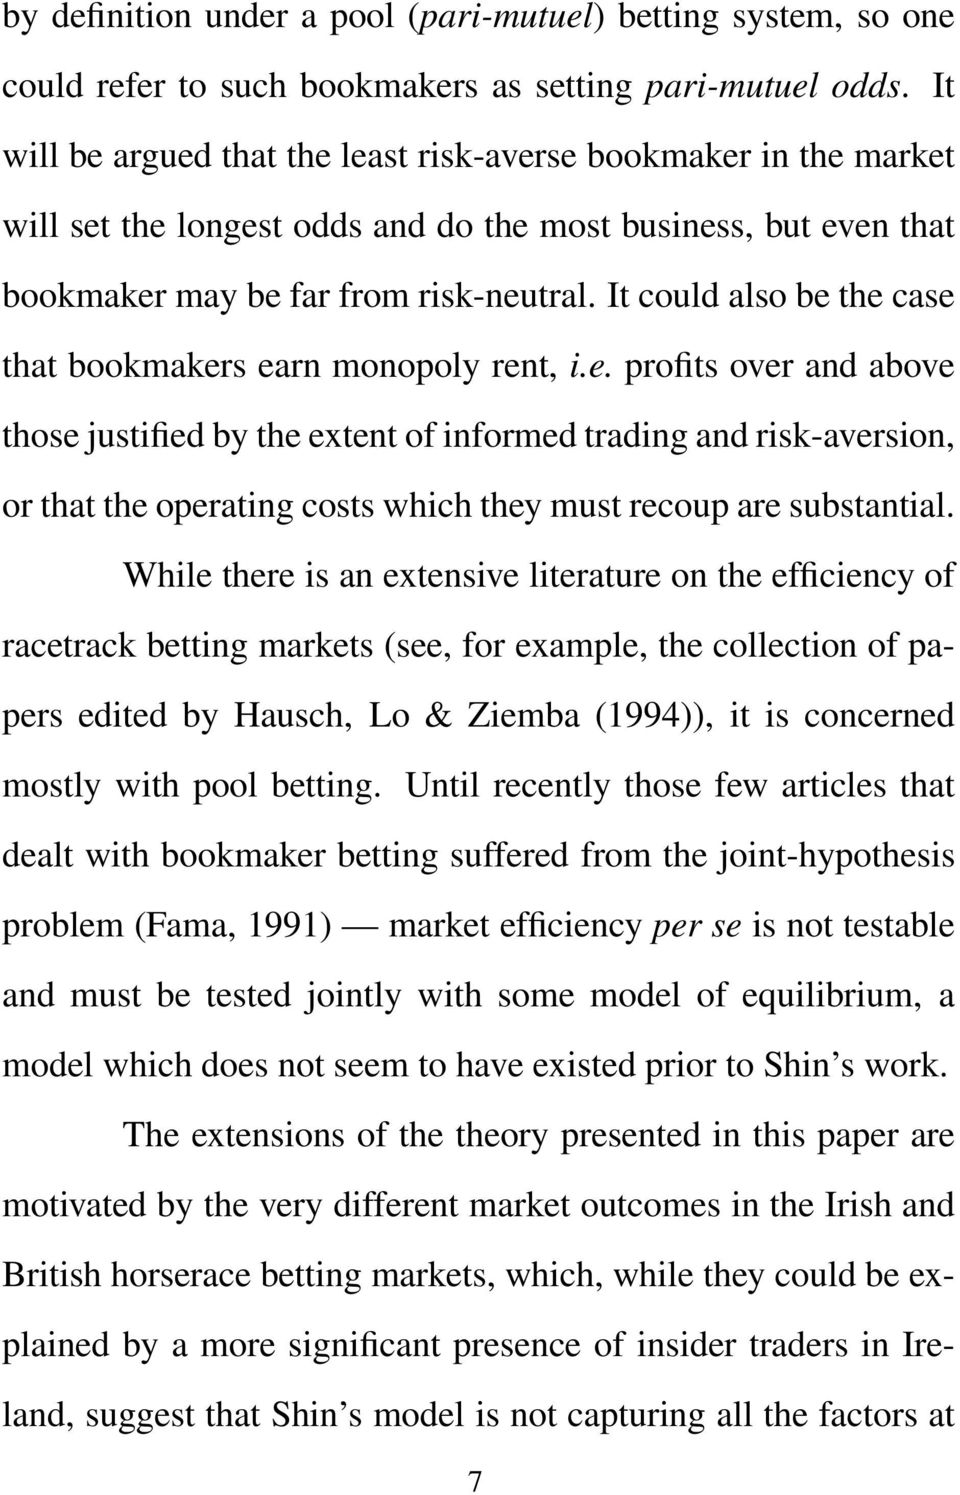 Optimal Determination of Bookmakers Betting Odds: Theory and